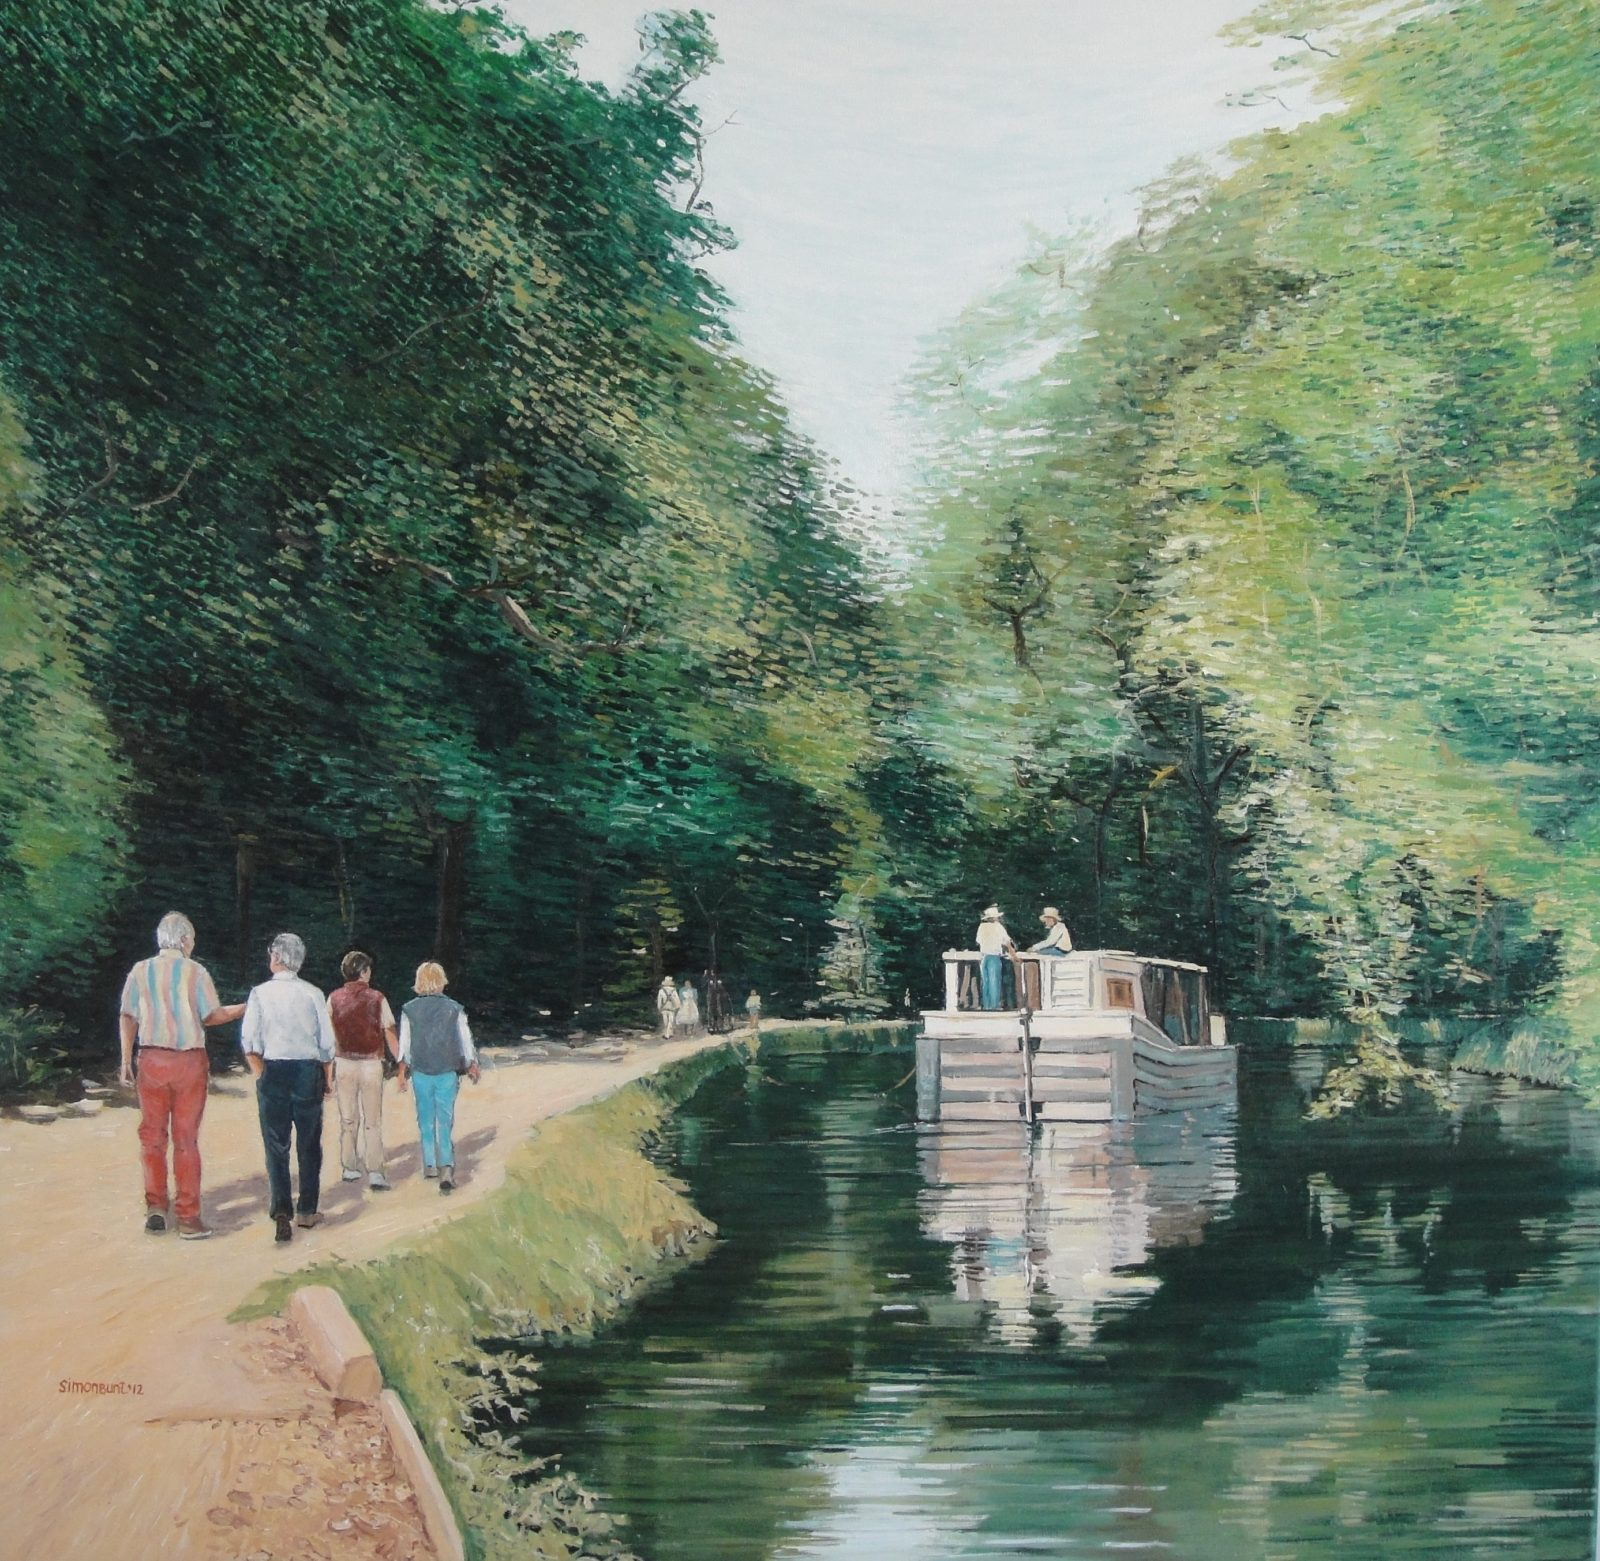 c&o canal Washington DC acrylic on linen 100x1007